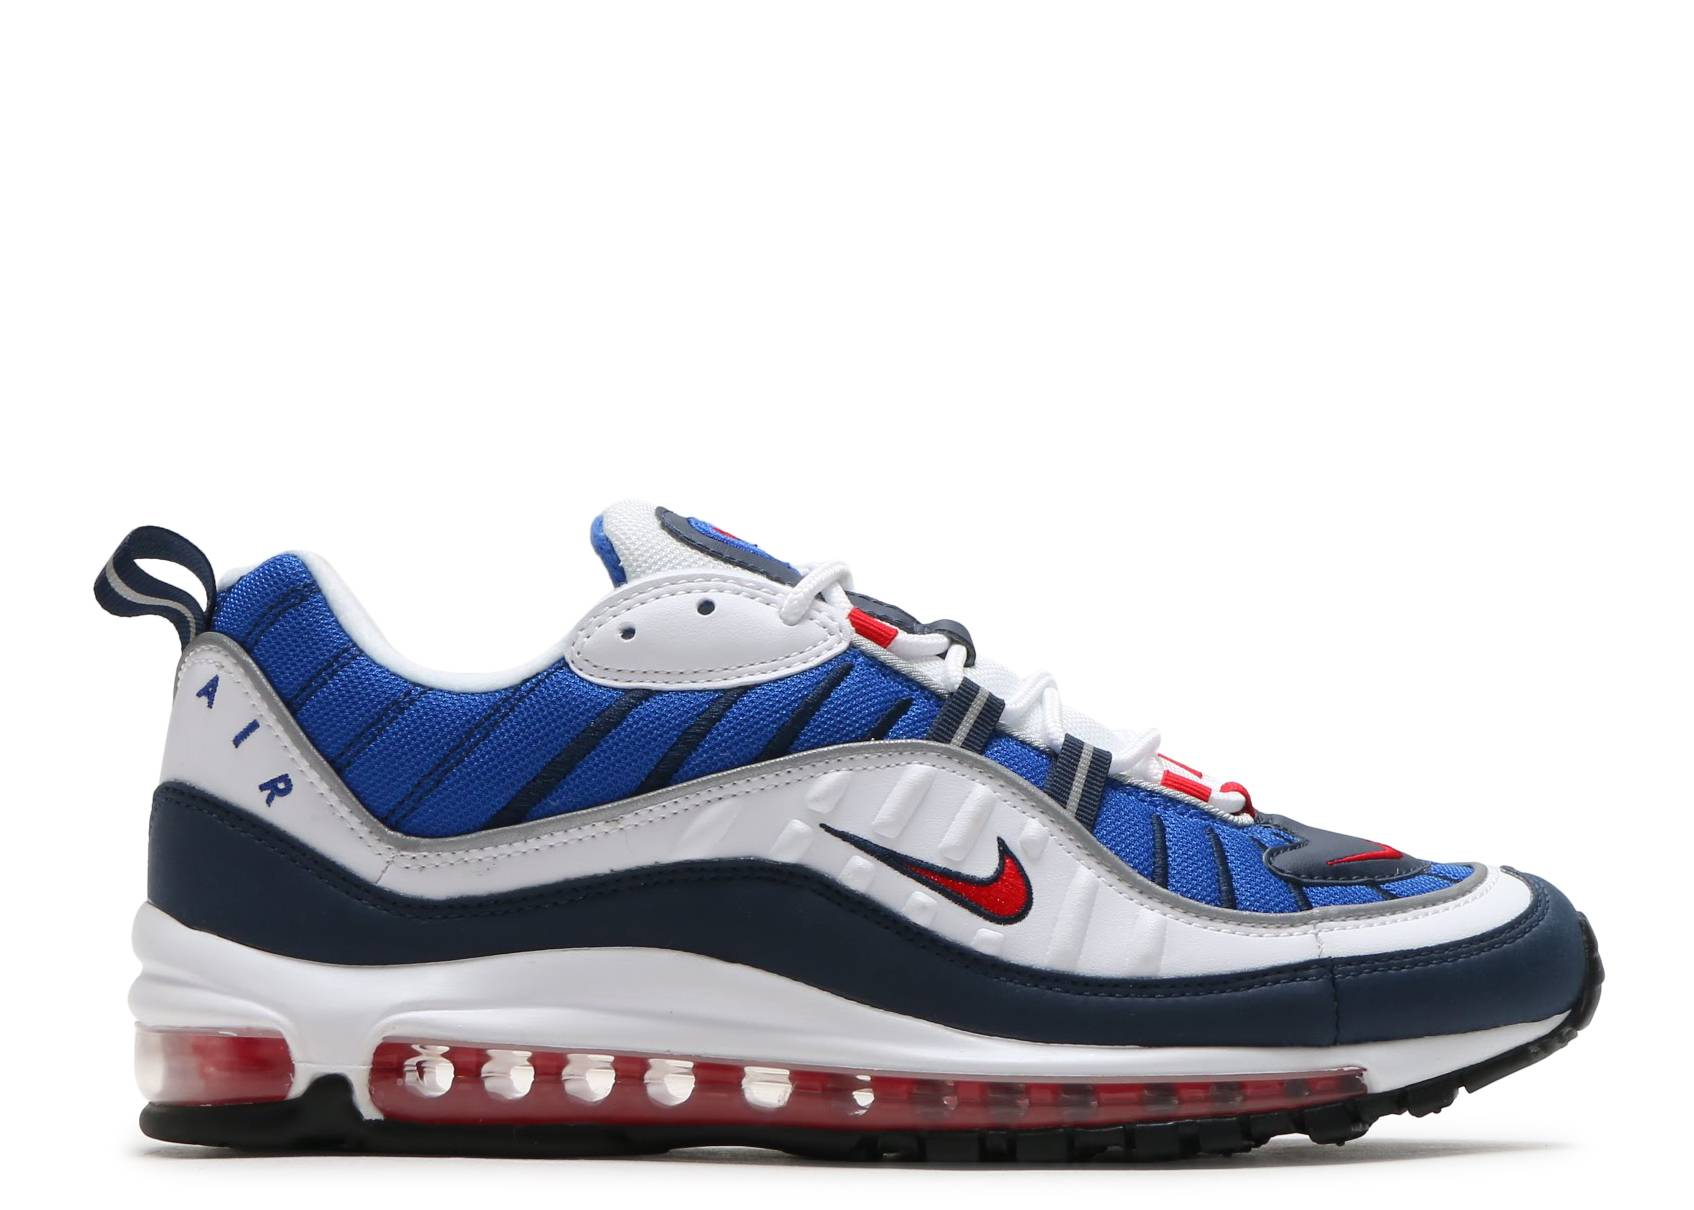 Inclinado Shipley entregar  Air Max 98 'Gundam' - Nike - 640744 100 - white/university red-obsidian |  Flight Club